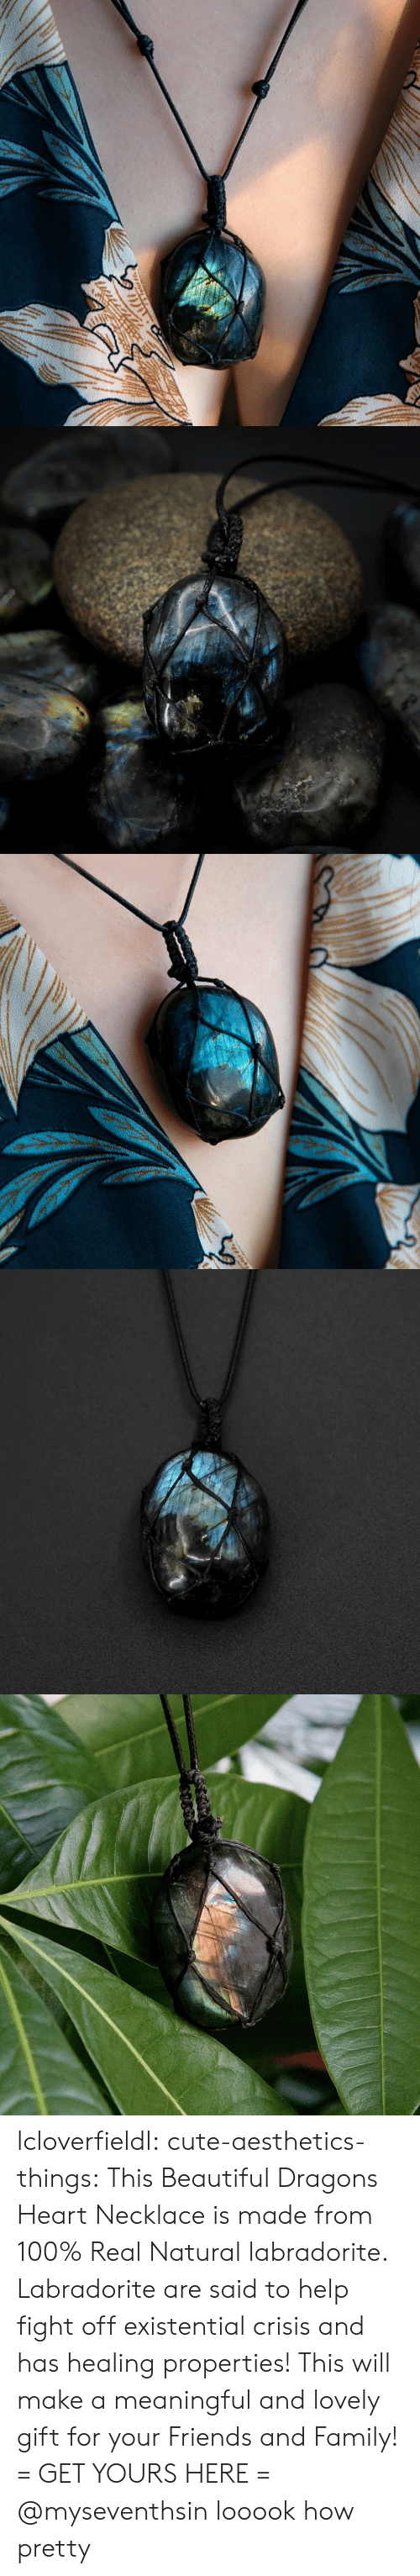 Anaconda, Beautiful, and Cute: lcloverfieldl: cute-aesthetics-things:  This Beautiful Dragons Heart Necklace is made from 100% Real Natural labradorite. Labradorite are said to help fight offexistential crisis and has healing properties! This will make a meaningful and lovely gift for your Friends and Family! = GET YOURS HERE =   @myseventhsin looook how pretty